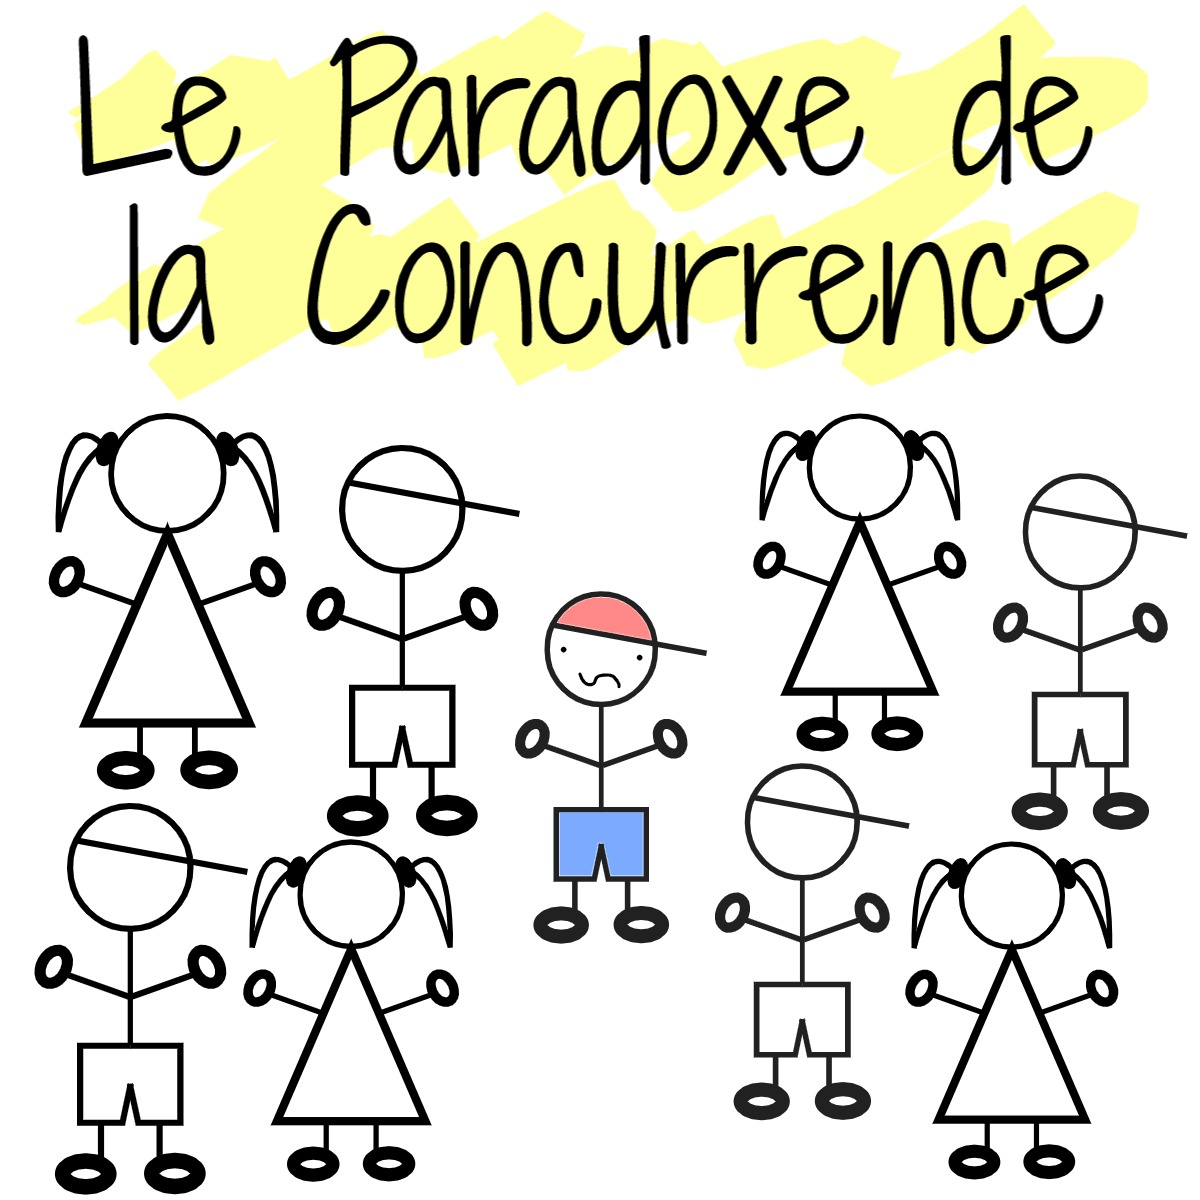 paradoxe concurrence freelance